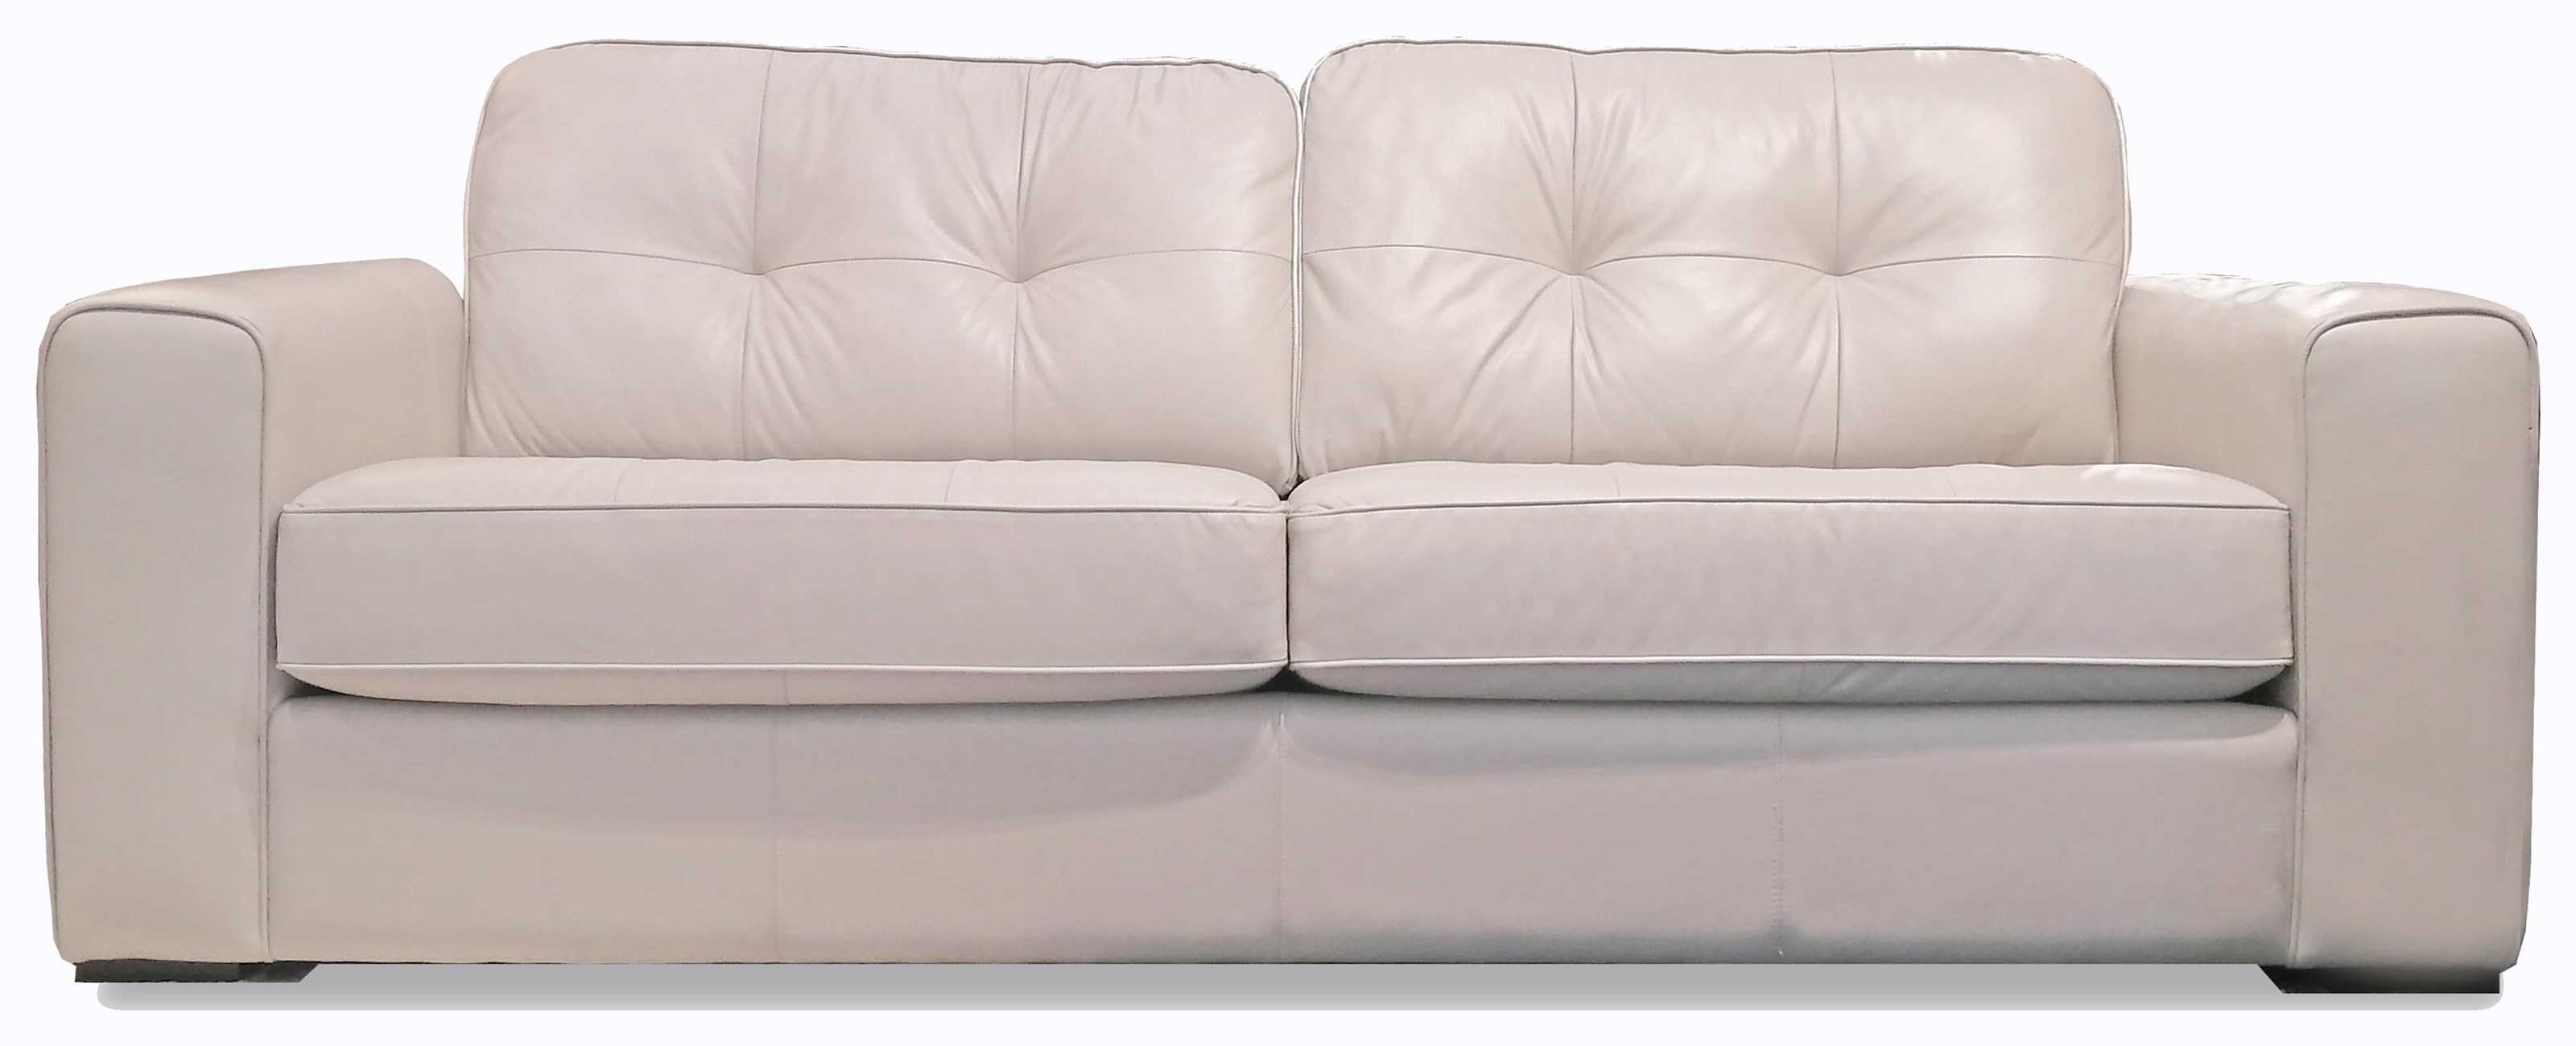 3990 3990 Leather Sofa by Decor-Rest at Upper Room Home Furnishings